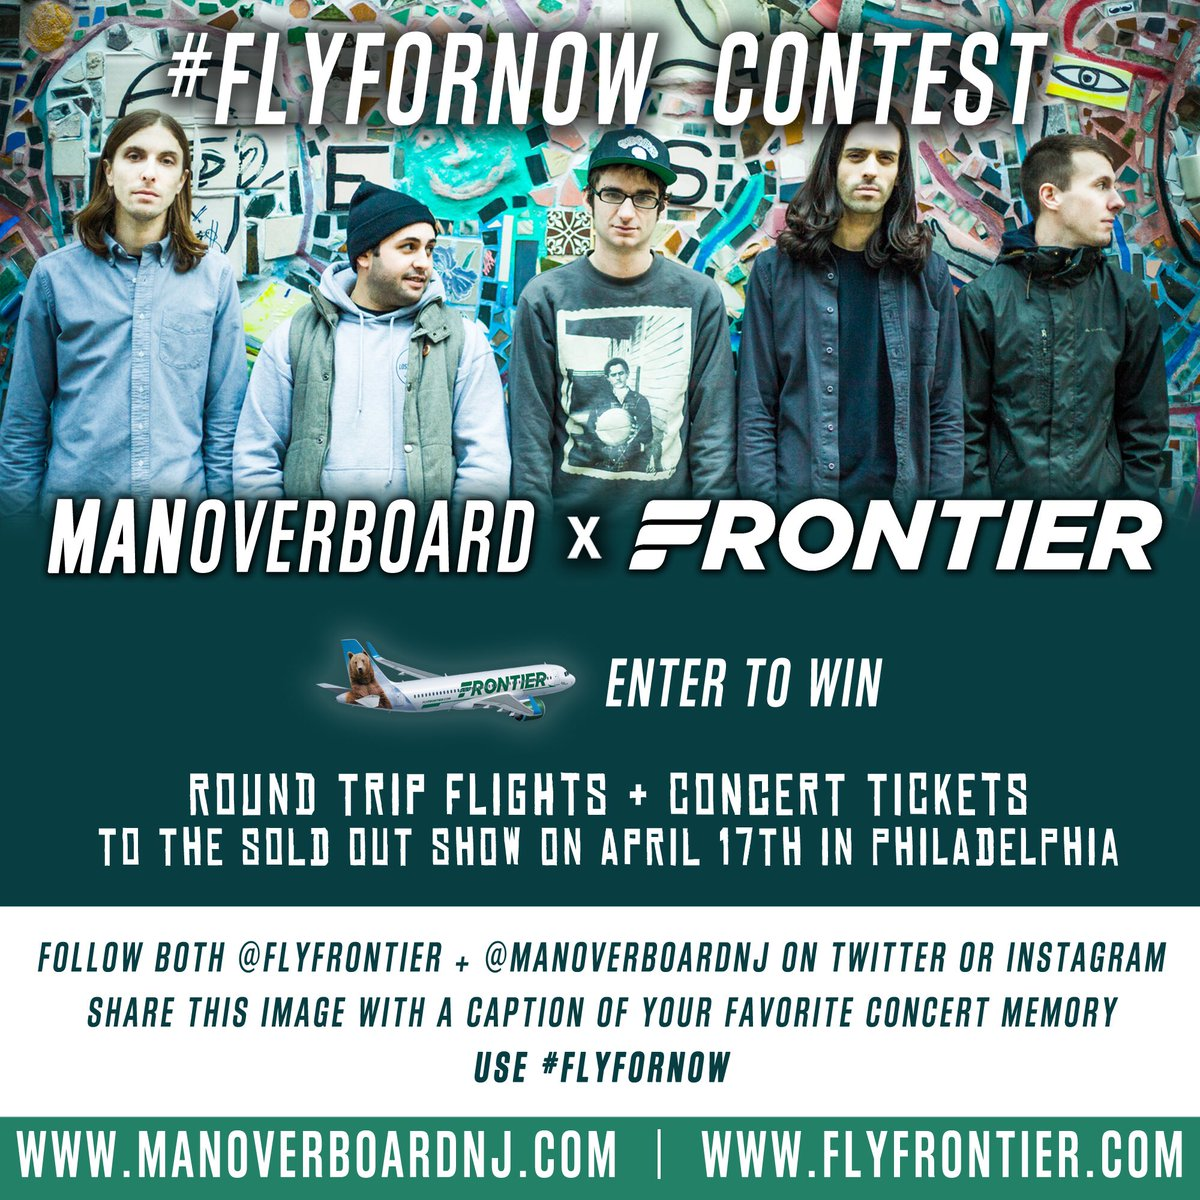 RT @ManOverboardNJ: We teamed up w/ @FlyFrontier to fly a fan to our sold out show in Philly. Info> flyfornow http…